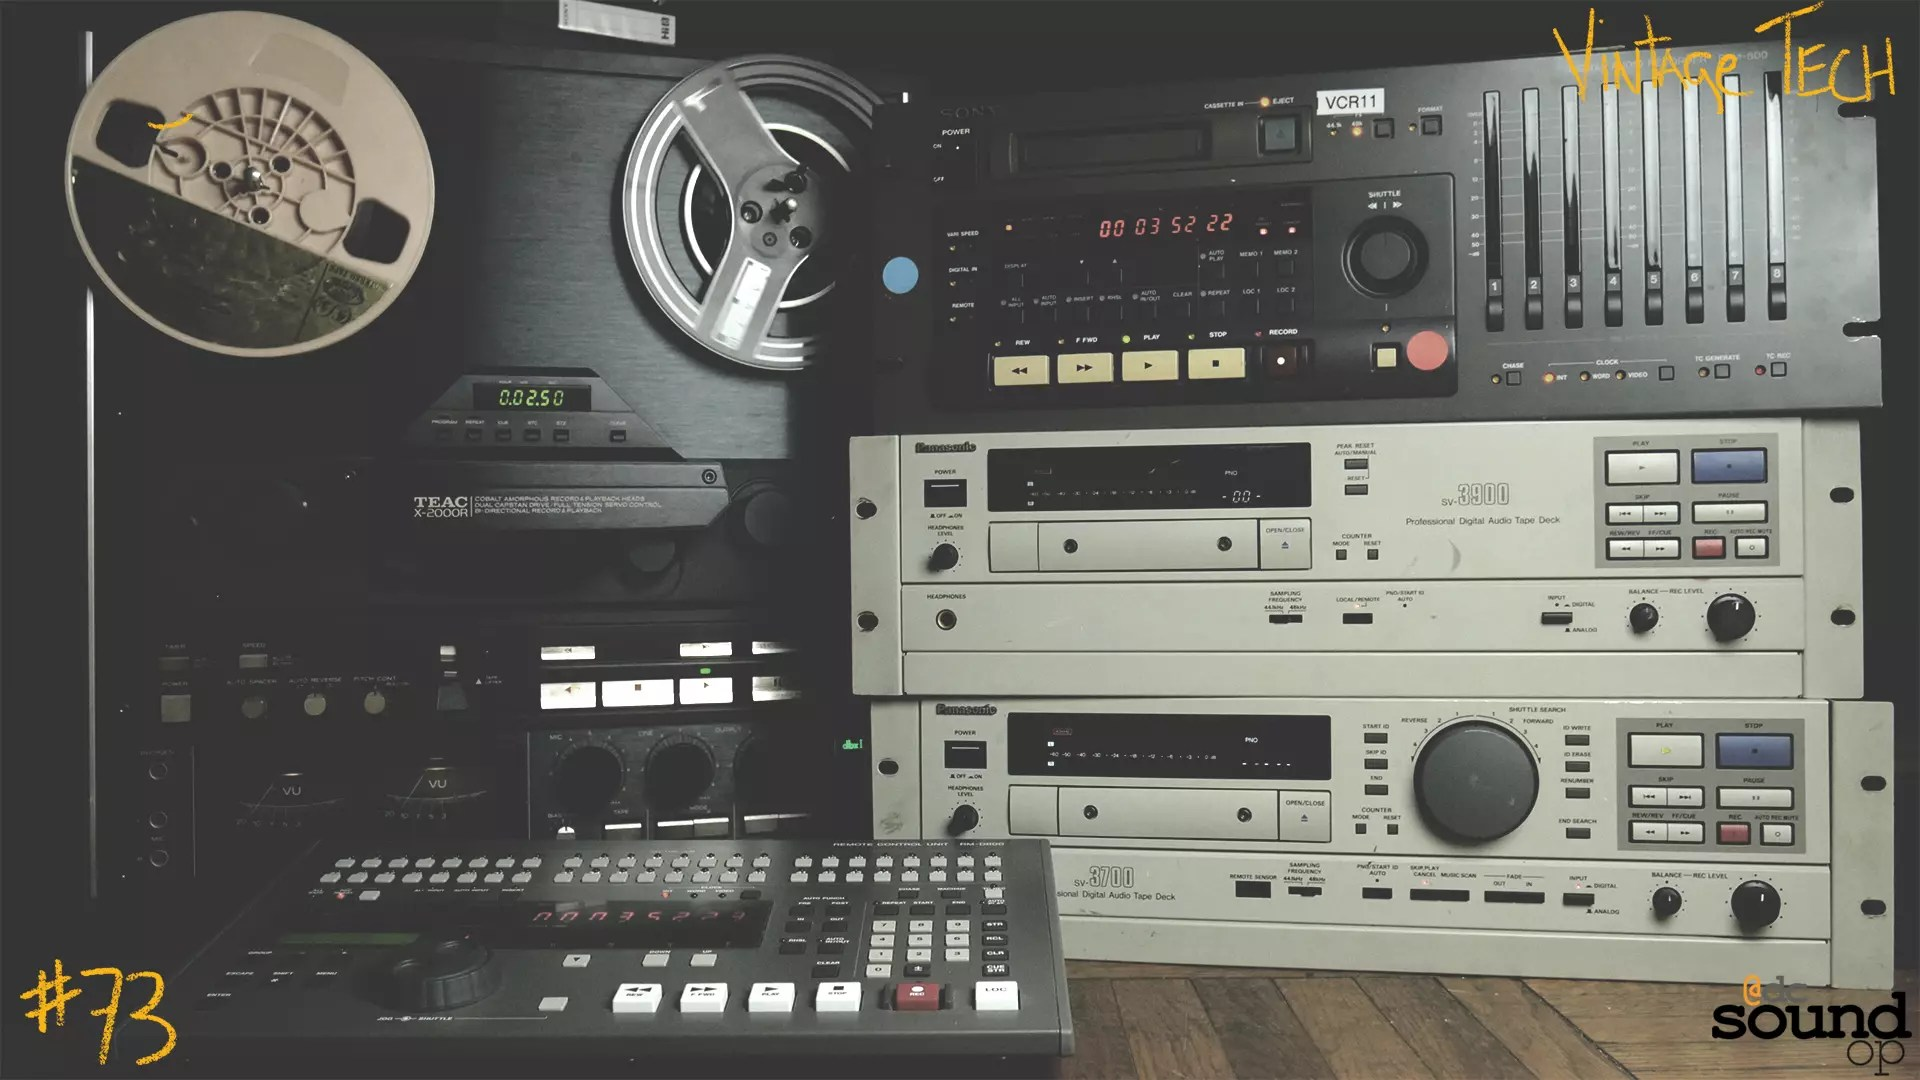 #73 – Vintage Tech: Tape Based Recording Sneak Preview